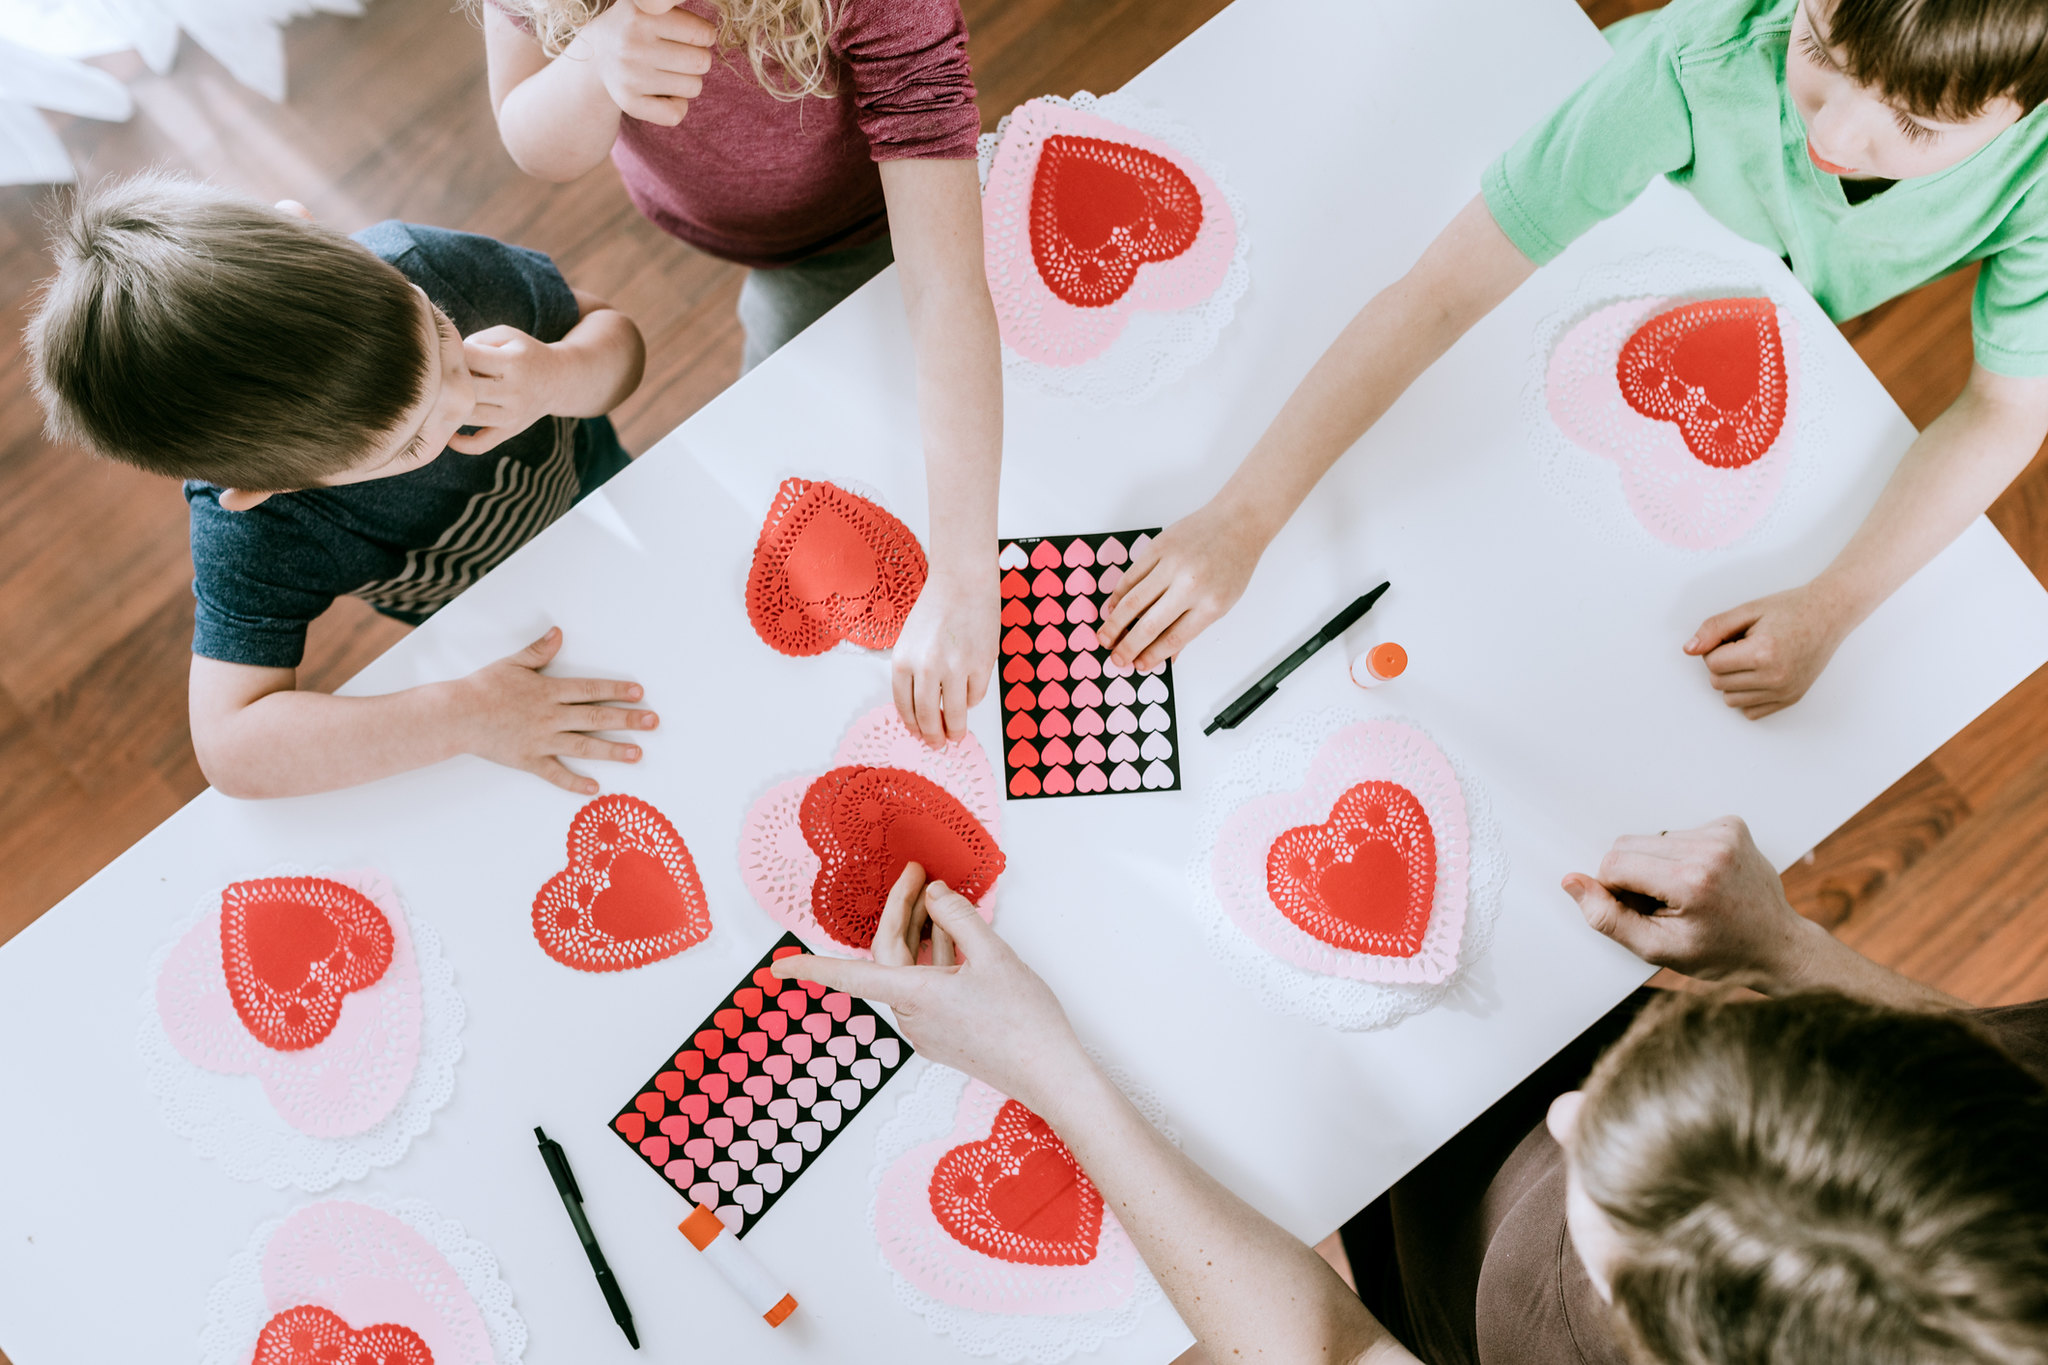 children making cards with lovehearts